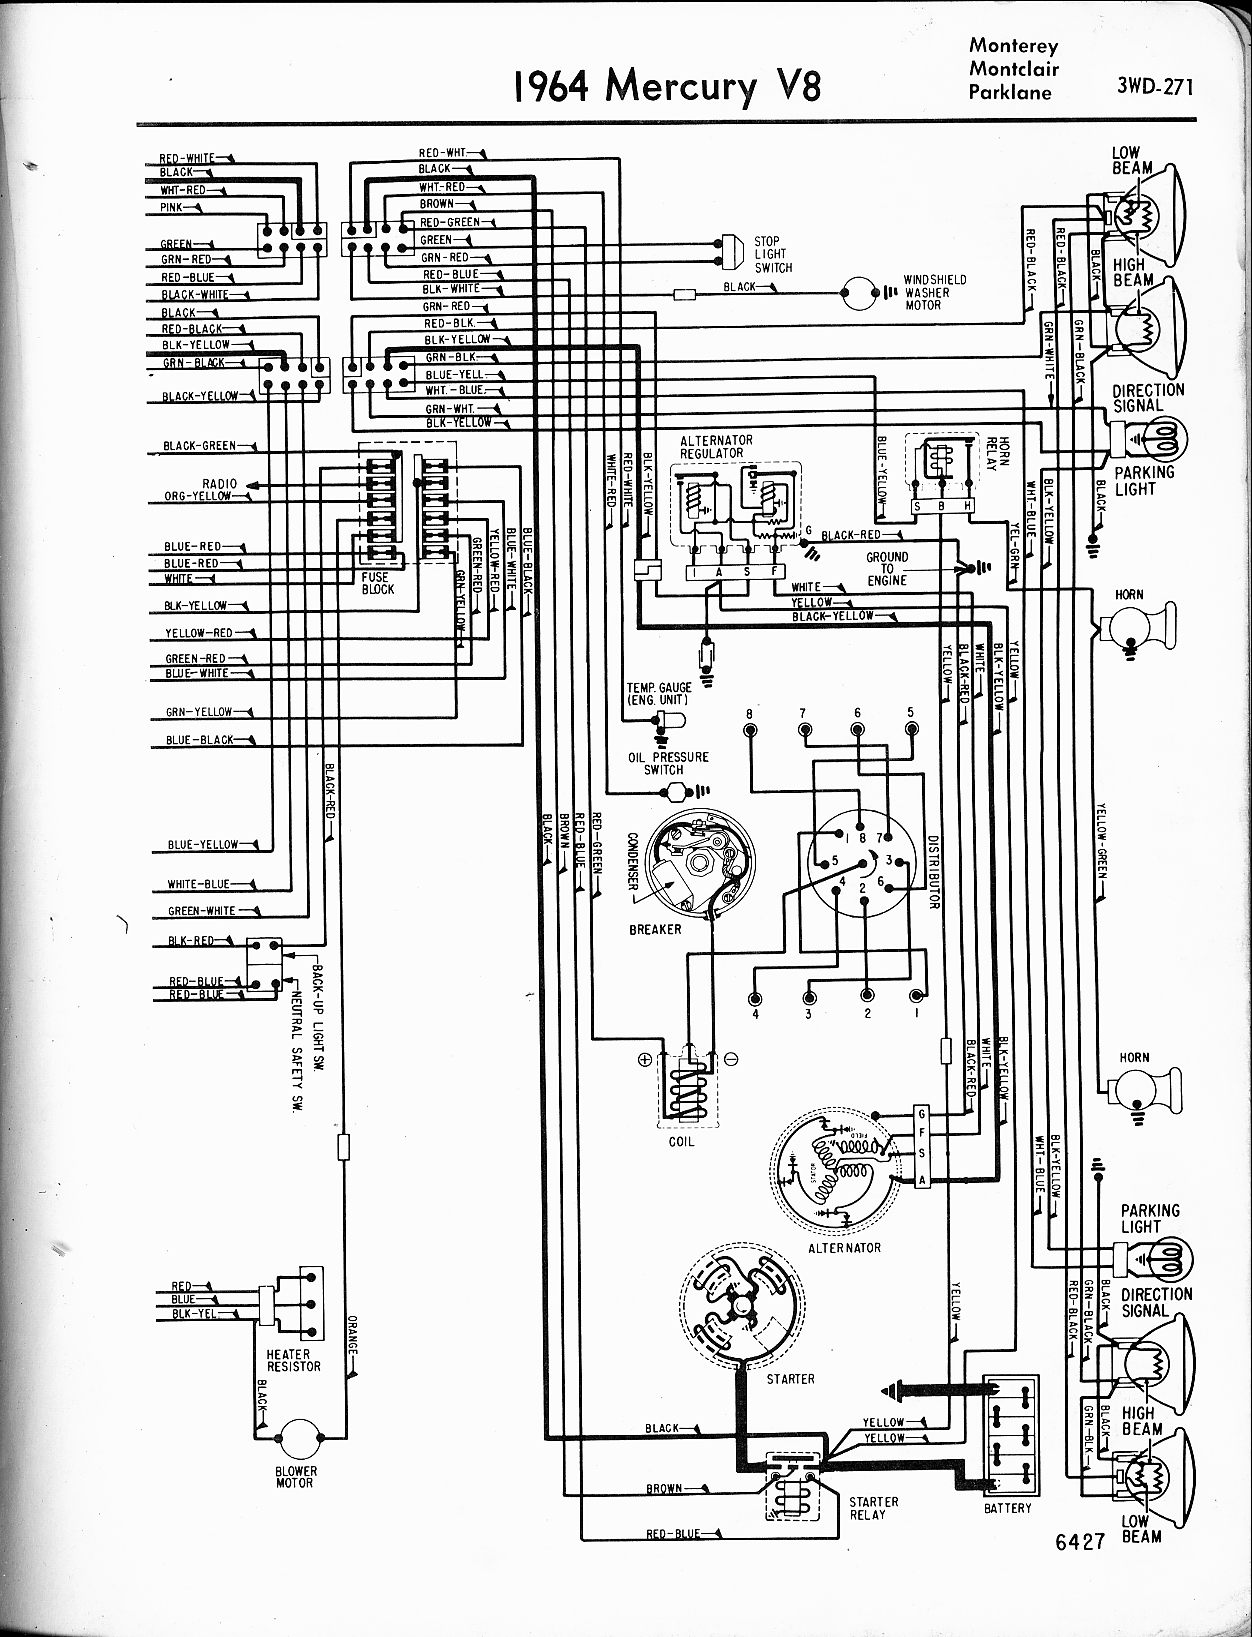 MWire5765 271 mercury wiring diagrams the old car manual project 1966 ford fairlane wiring diagram at mifinder.co